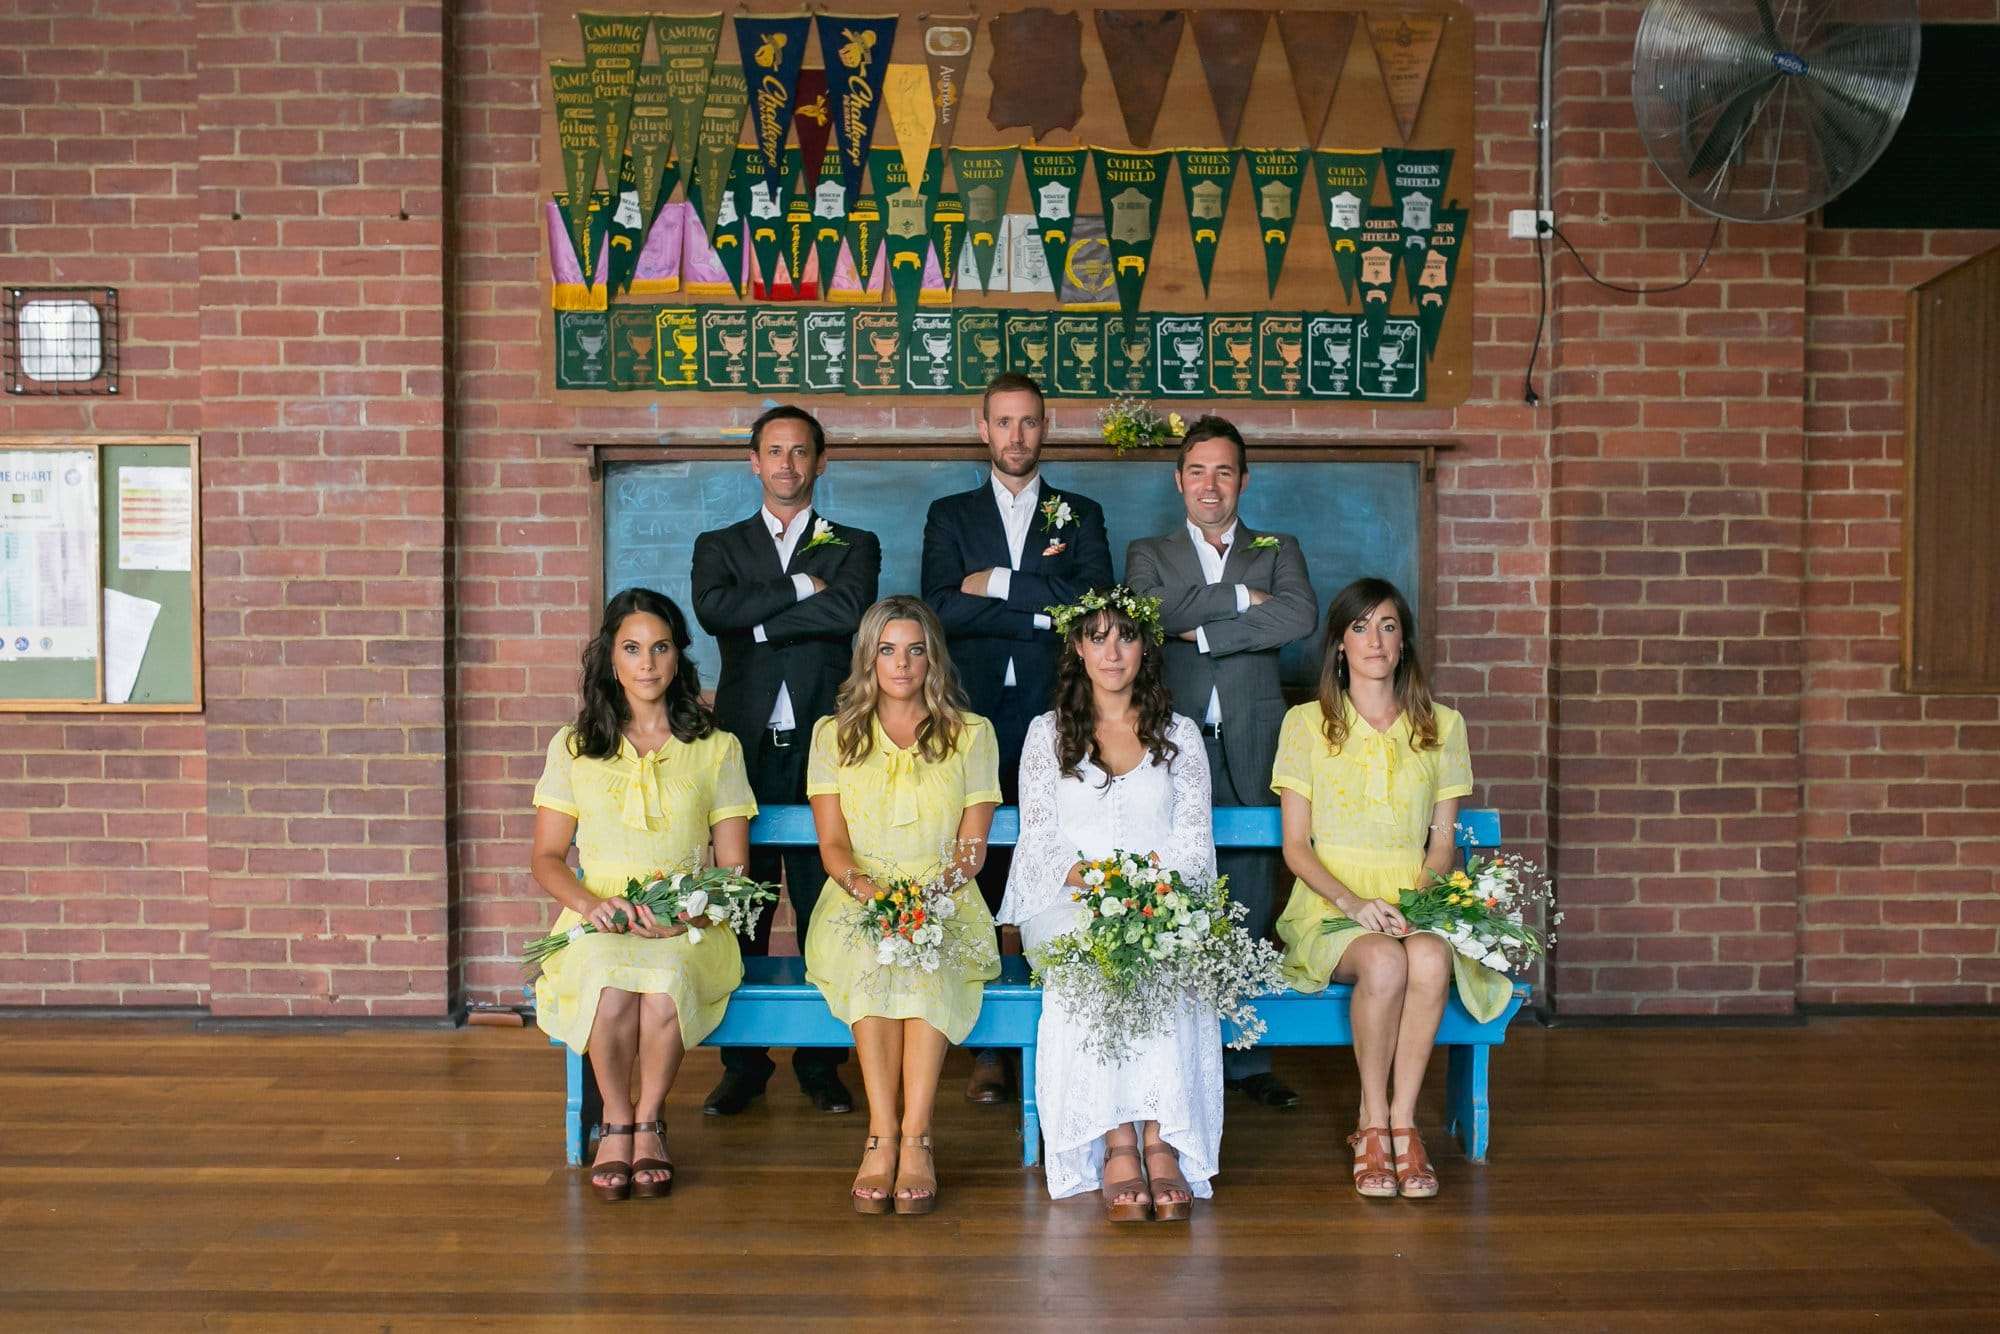 Melbourne_DIY_Scout_Hall_Cafe_Wedding_Photographer_34